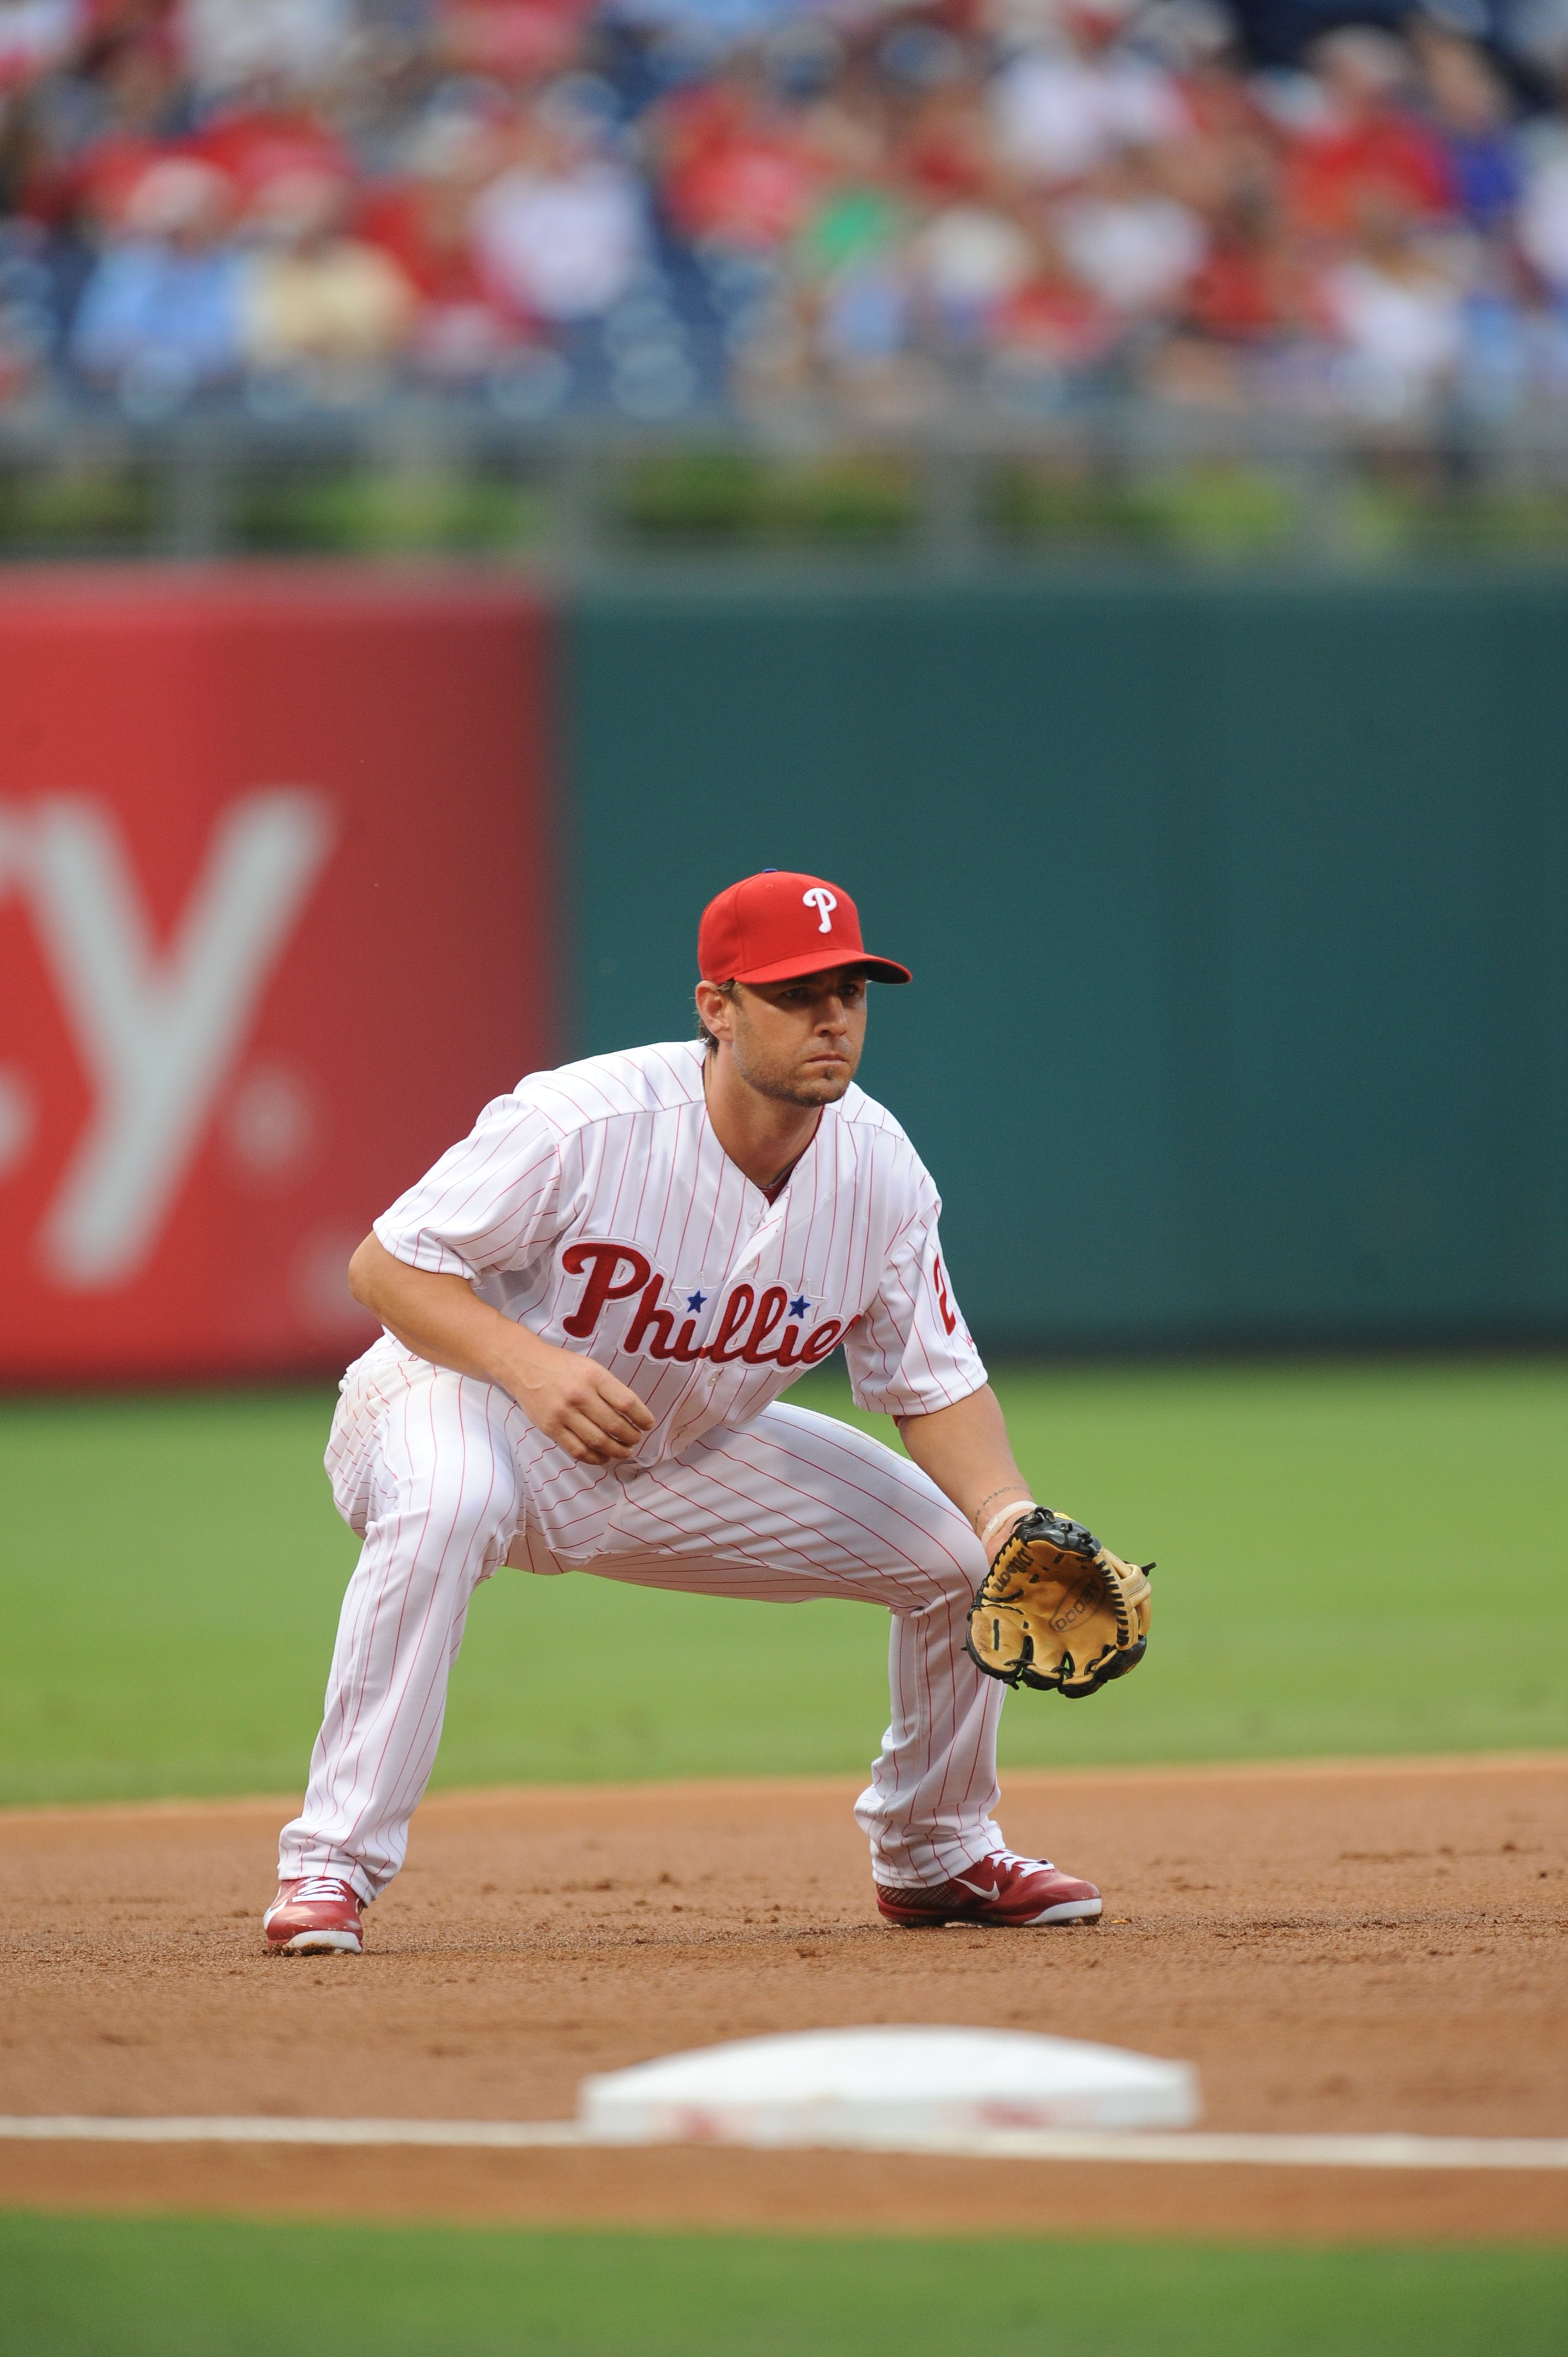 Private Fielding Instruction With Kevin Frandsen Private Fielding Instruction With Phillies Infielder Kevin Frandsen Improve On A Phillies Game Phillies Mlb